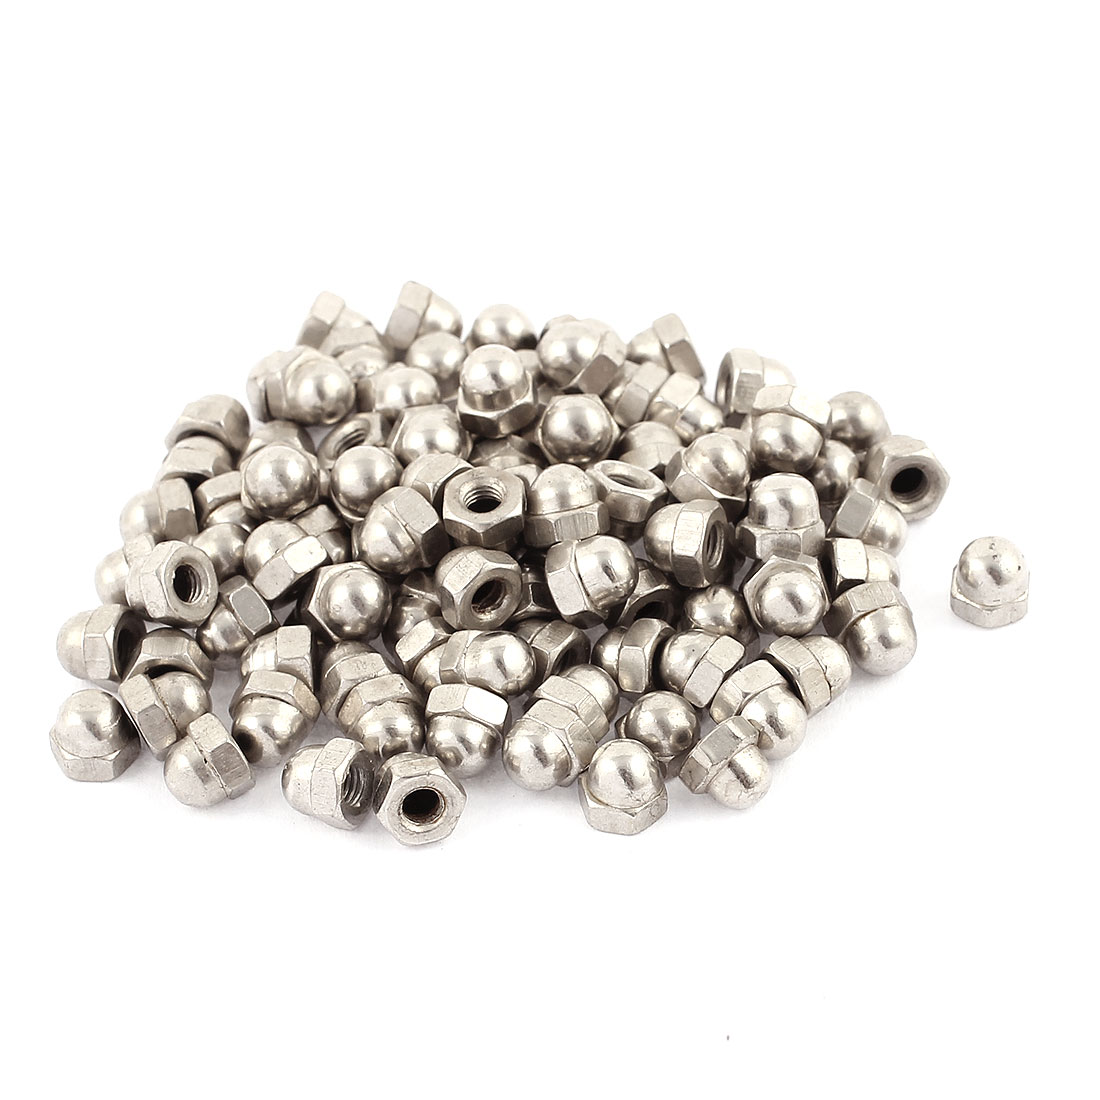 100 Pcs M4 304 Stainless Steel Metric Dome Head Cap Hexagon Nuts Silver Tone